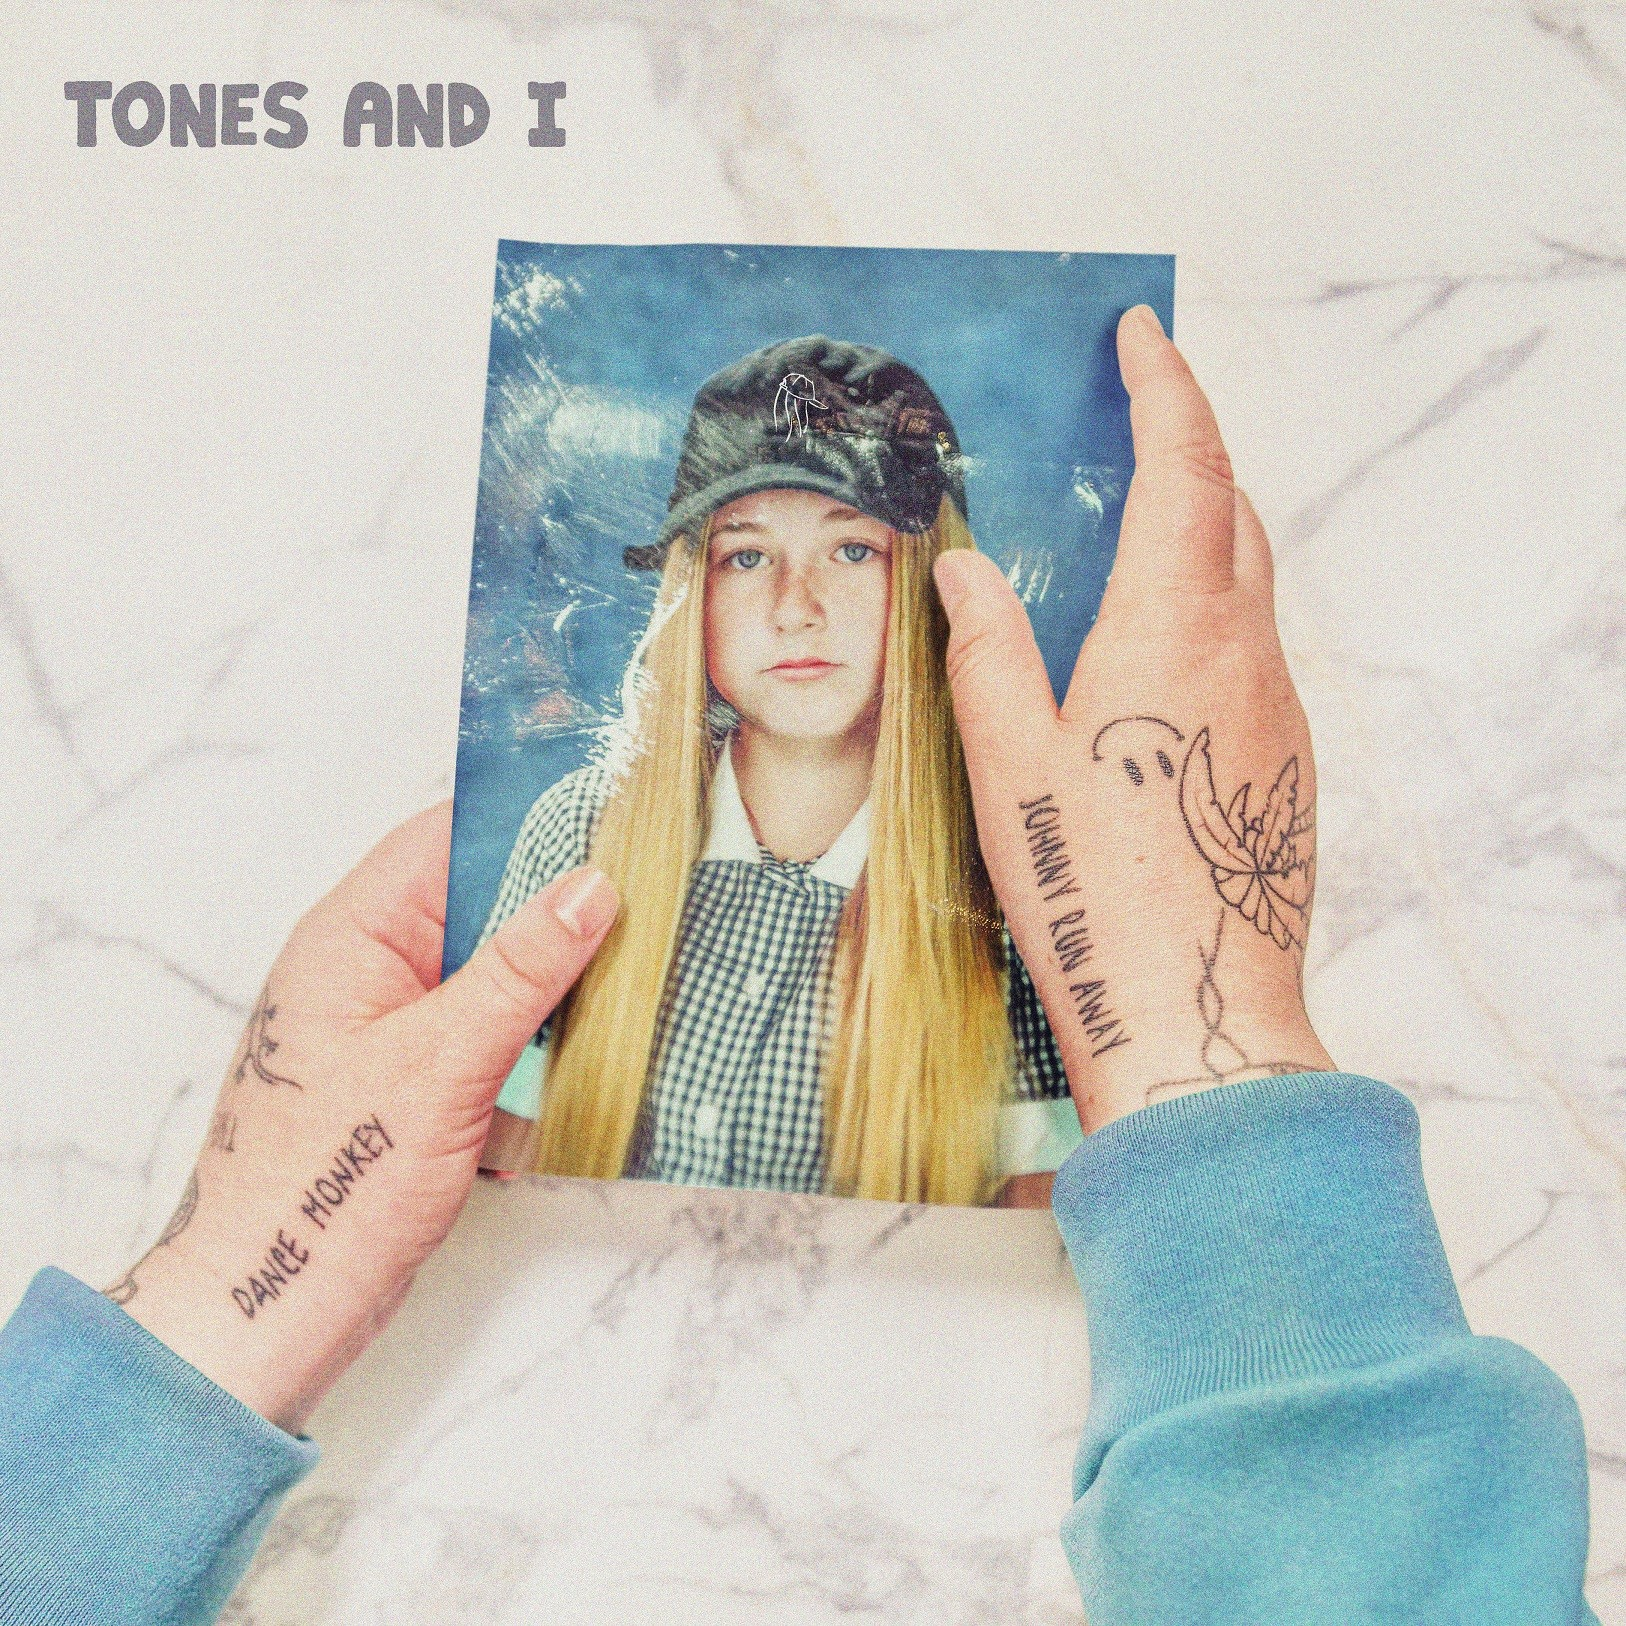 Tones and I unveils new singles 'Bad Child' and 'Can't Be Happy All The Time'